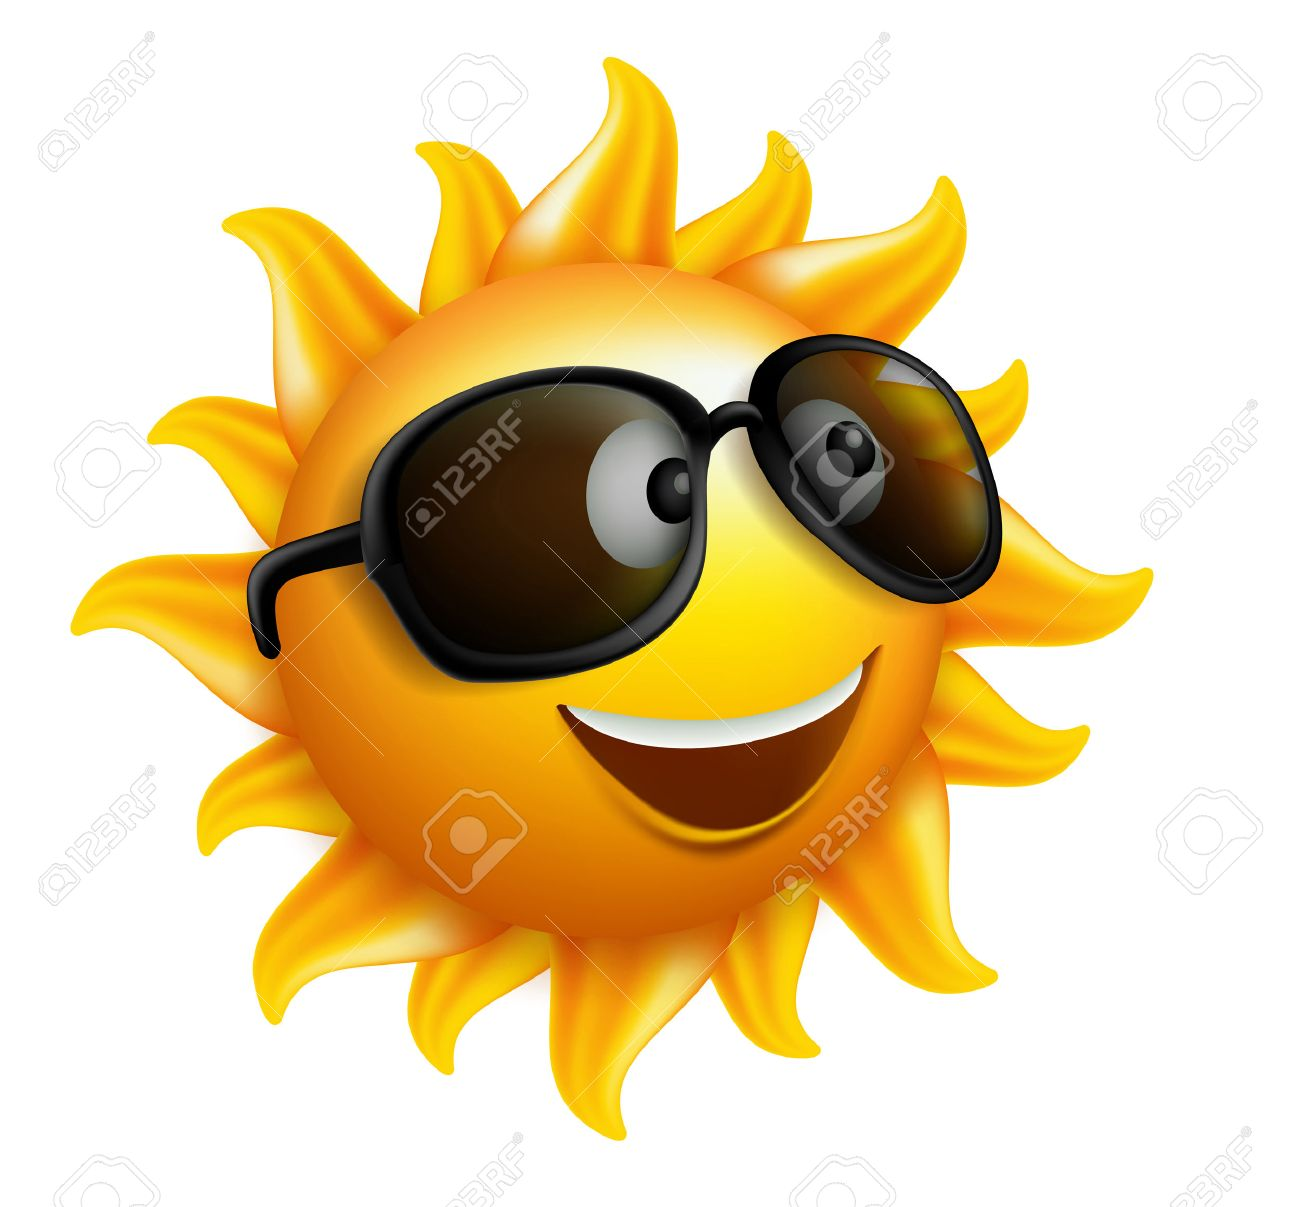 Smiling sun with sunglasses - Summer Sun Face With Sunglasses And Happy Smile Vector Illustration Stock Vector 37530820